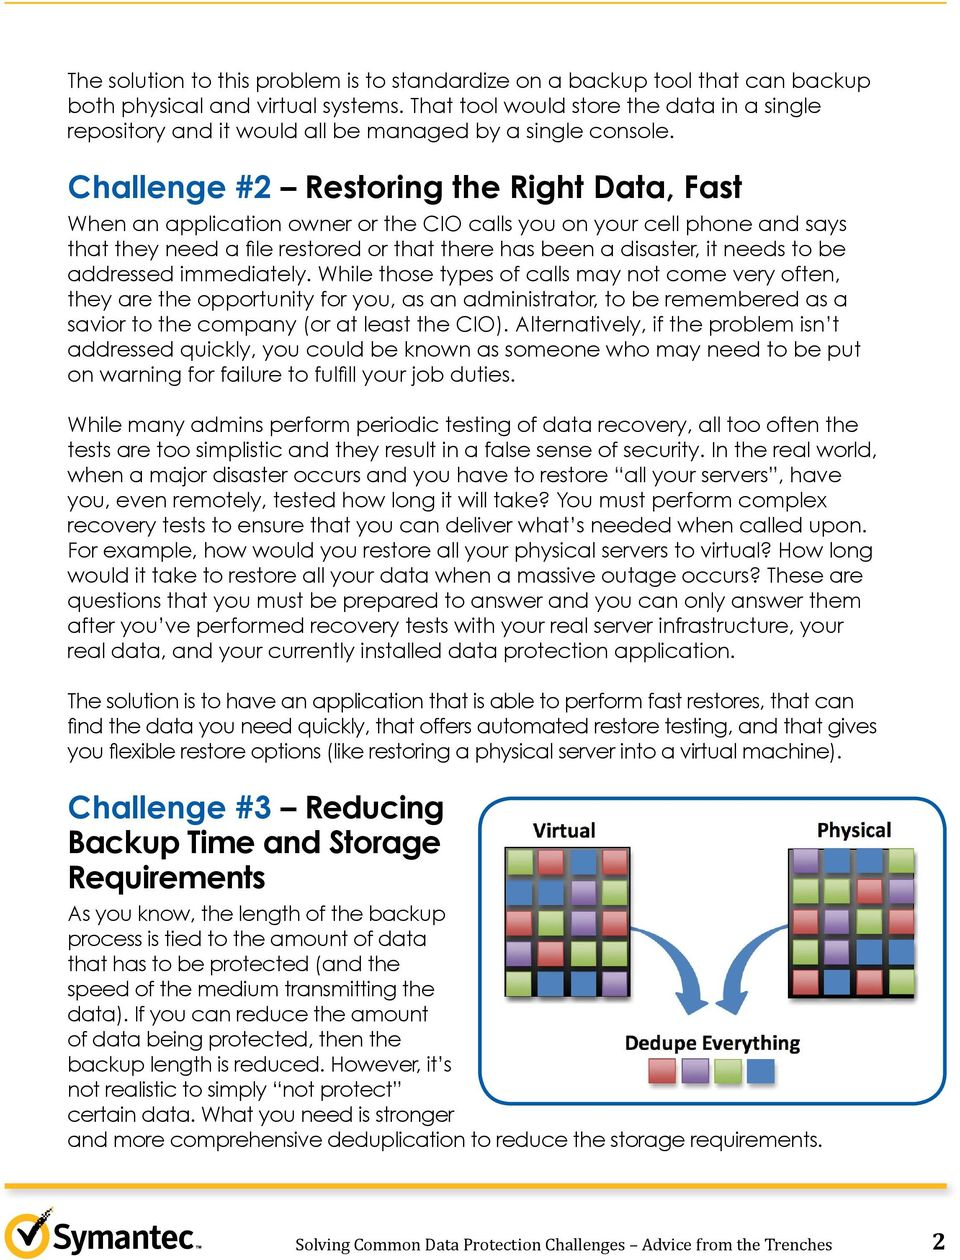 Challenge #2 Restoring the Right Data, Fast When an application owner or the CIO calls you on your cell phone and says that they need a file restored or that there has been a disaster, it needs to be